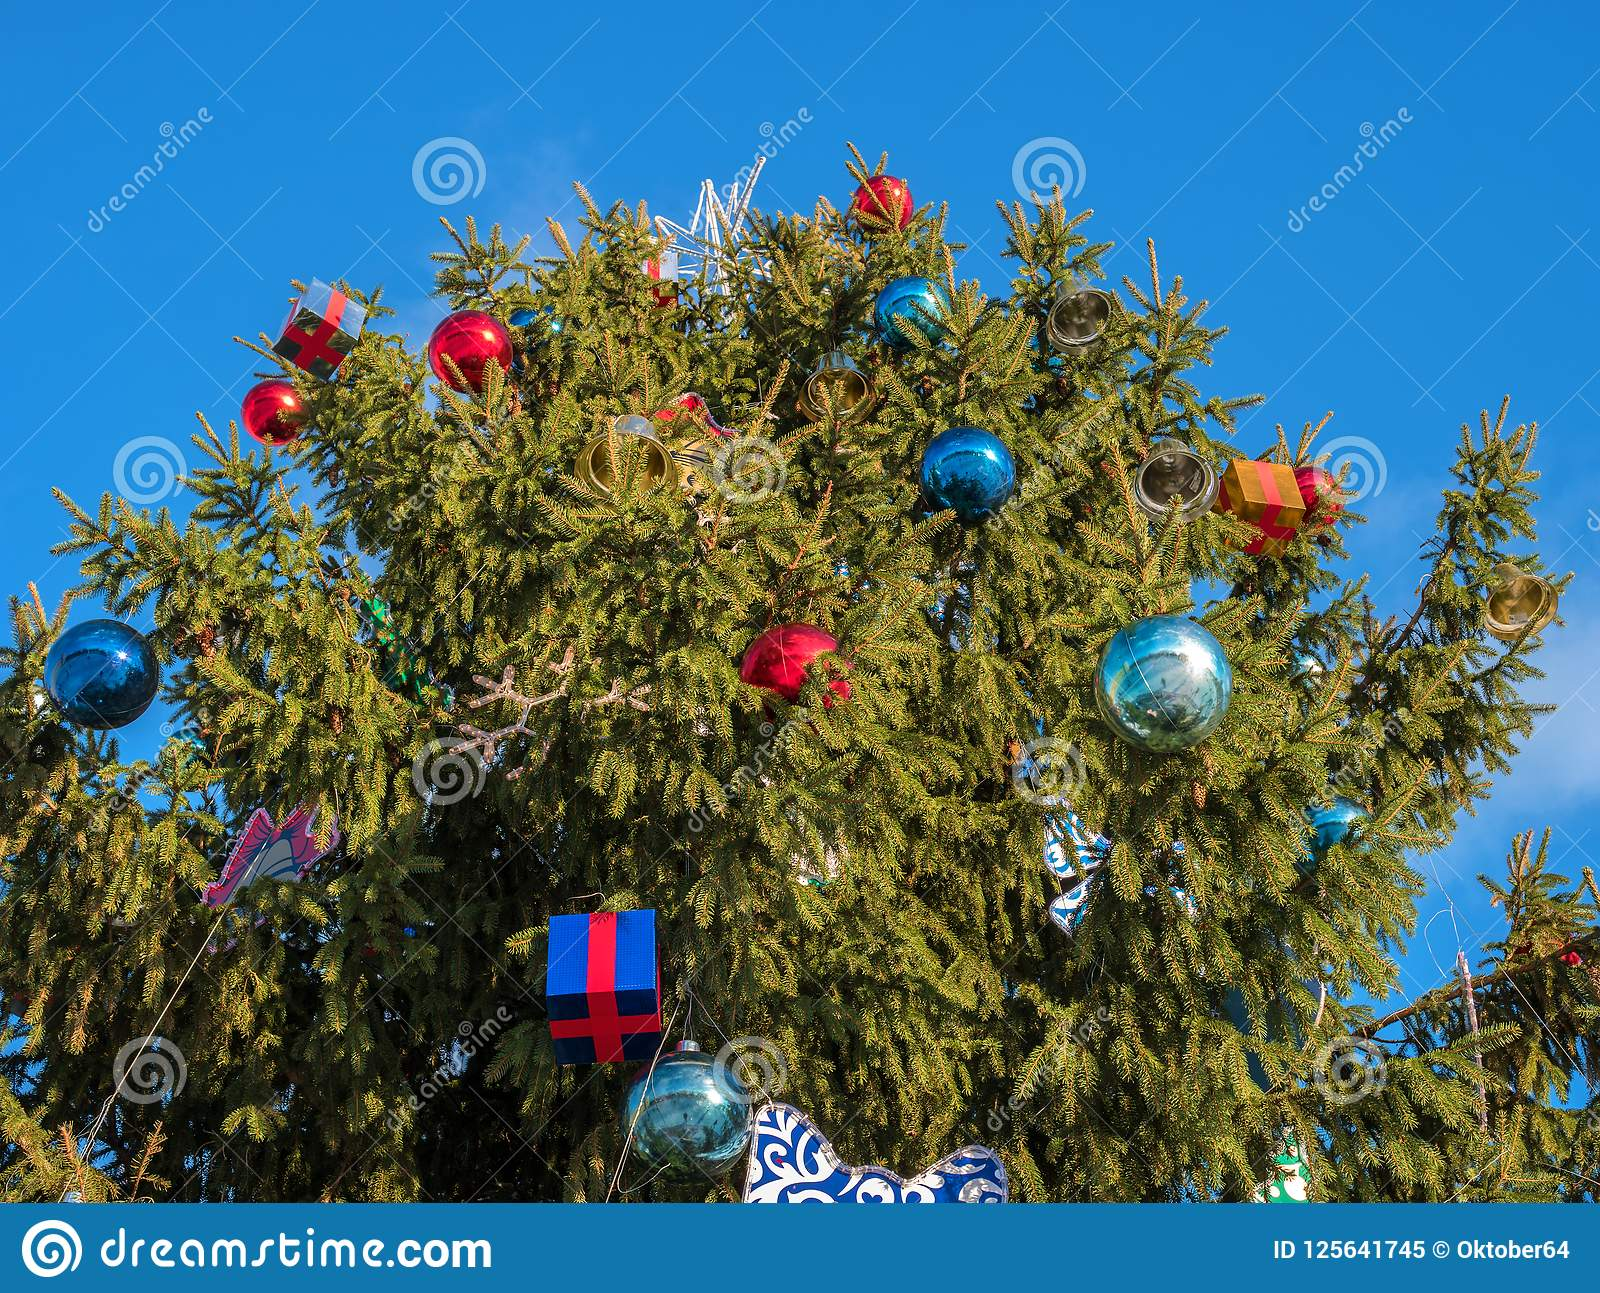 download christmas tree decorated with toys tree stands on the street top christmas tree - Decorative Christmas Tree Stands